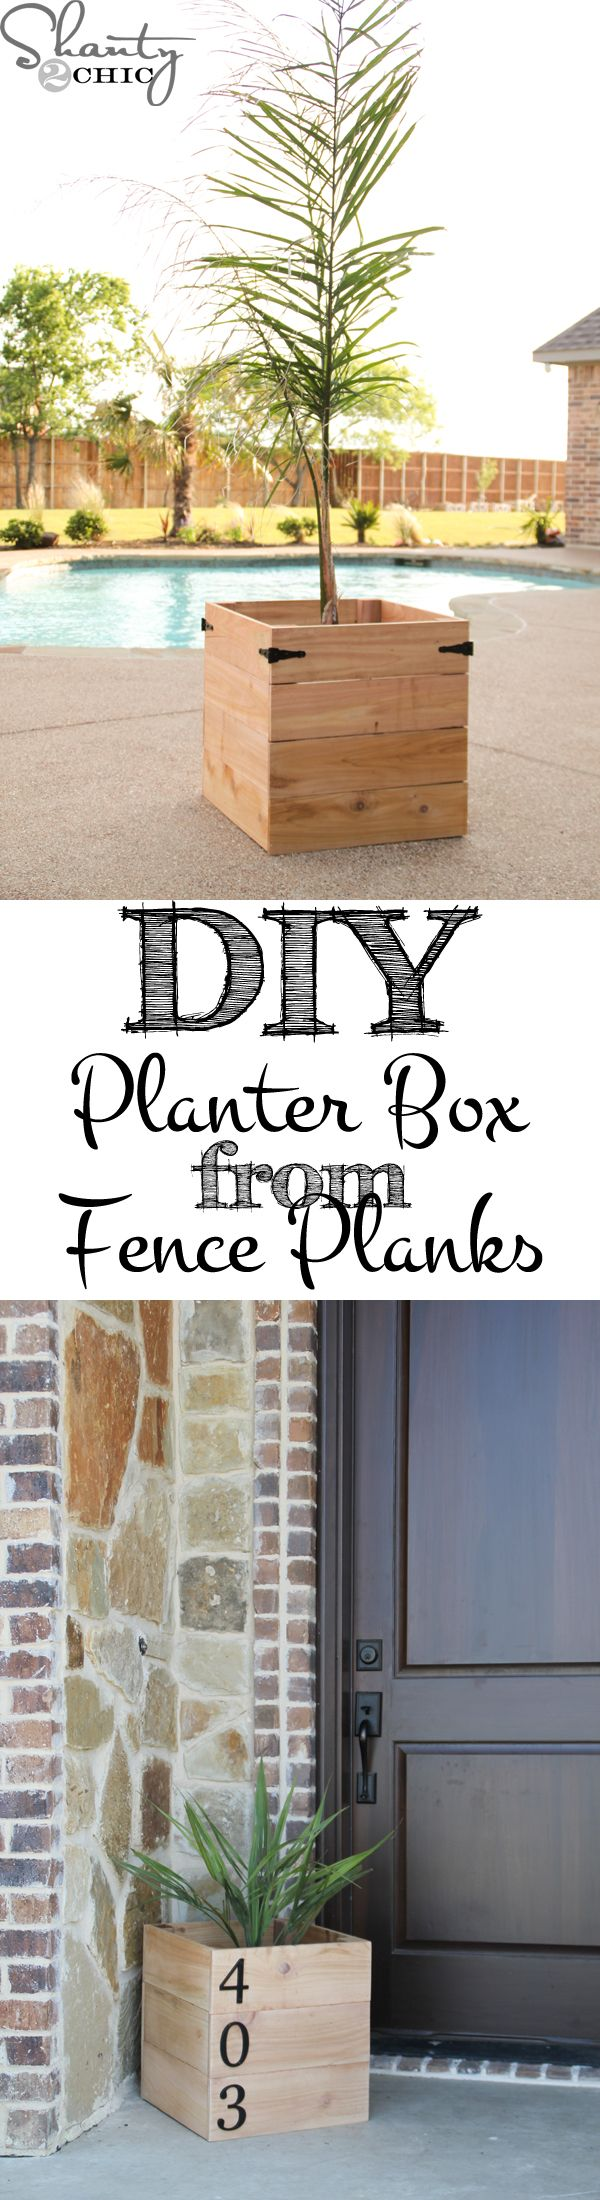 Super easy and inexpensive DIY Planter Boxes